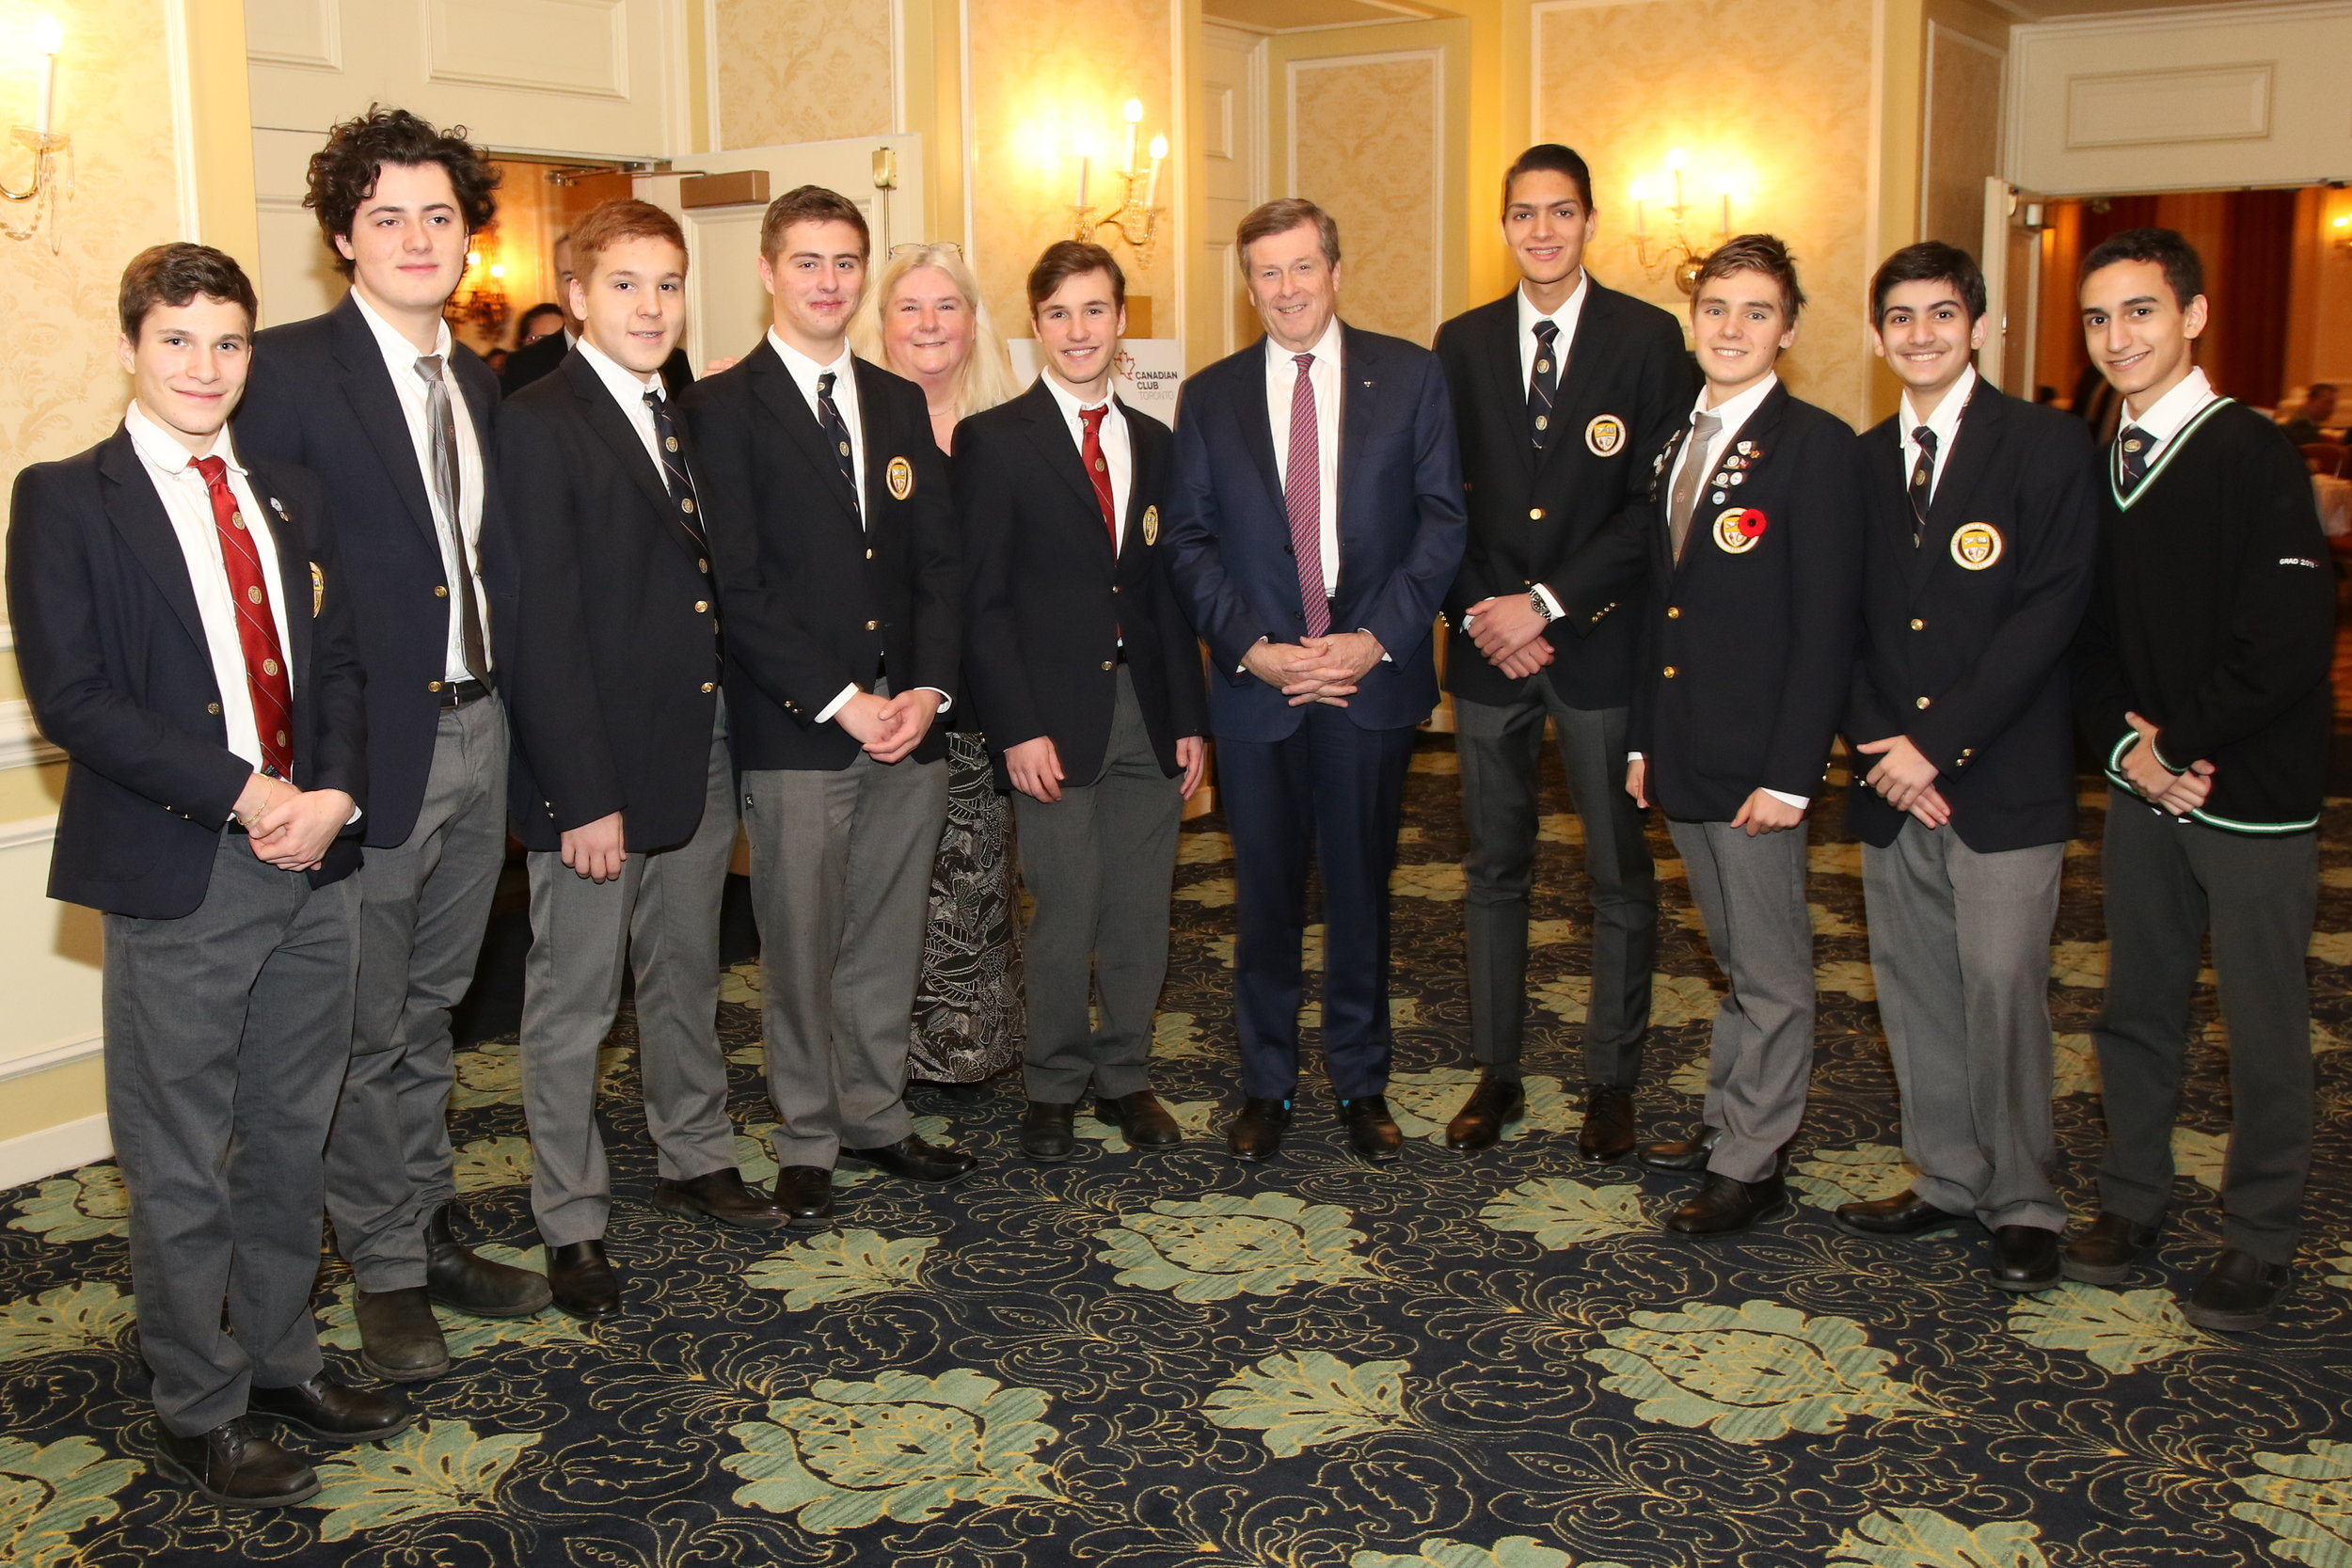 Mayor Tory & The York School.jpg